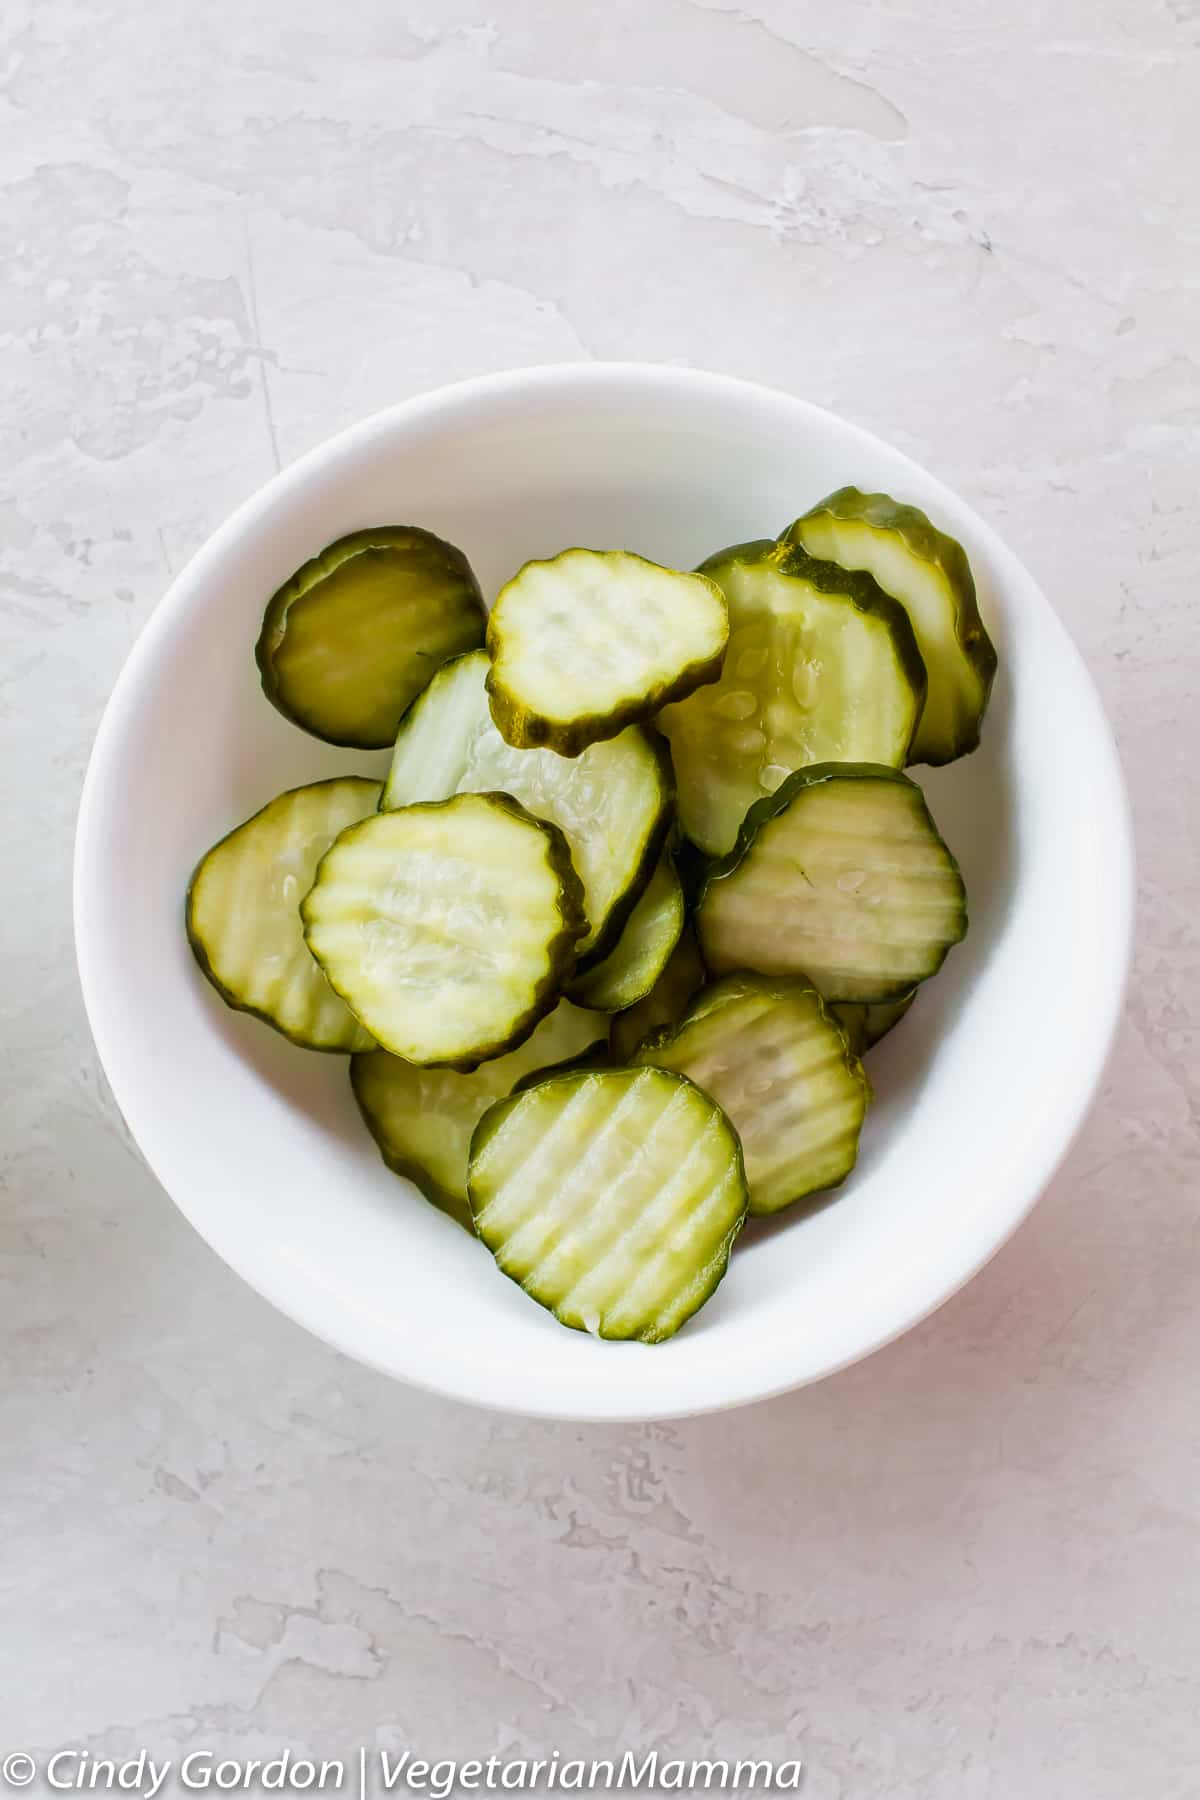 Dill pickle slices